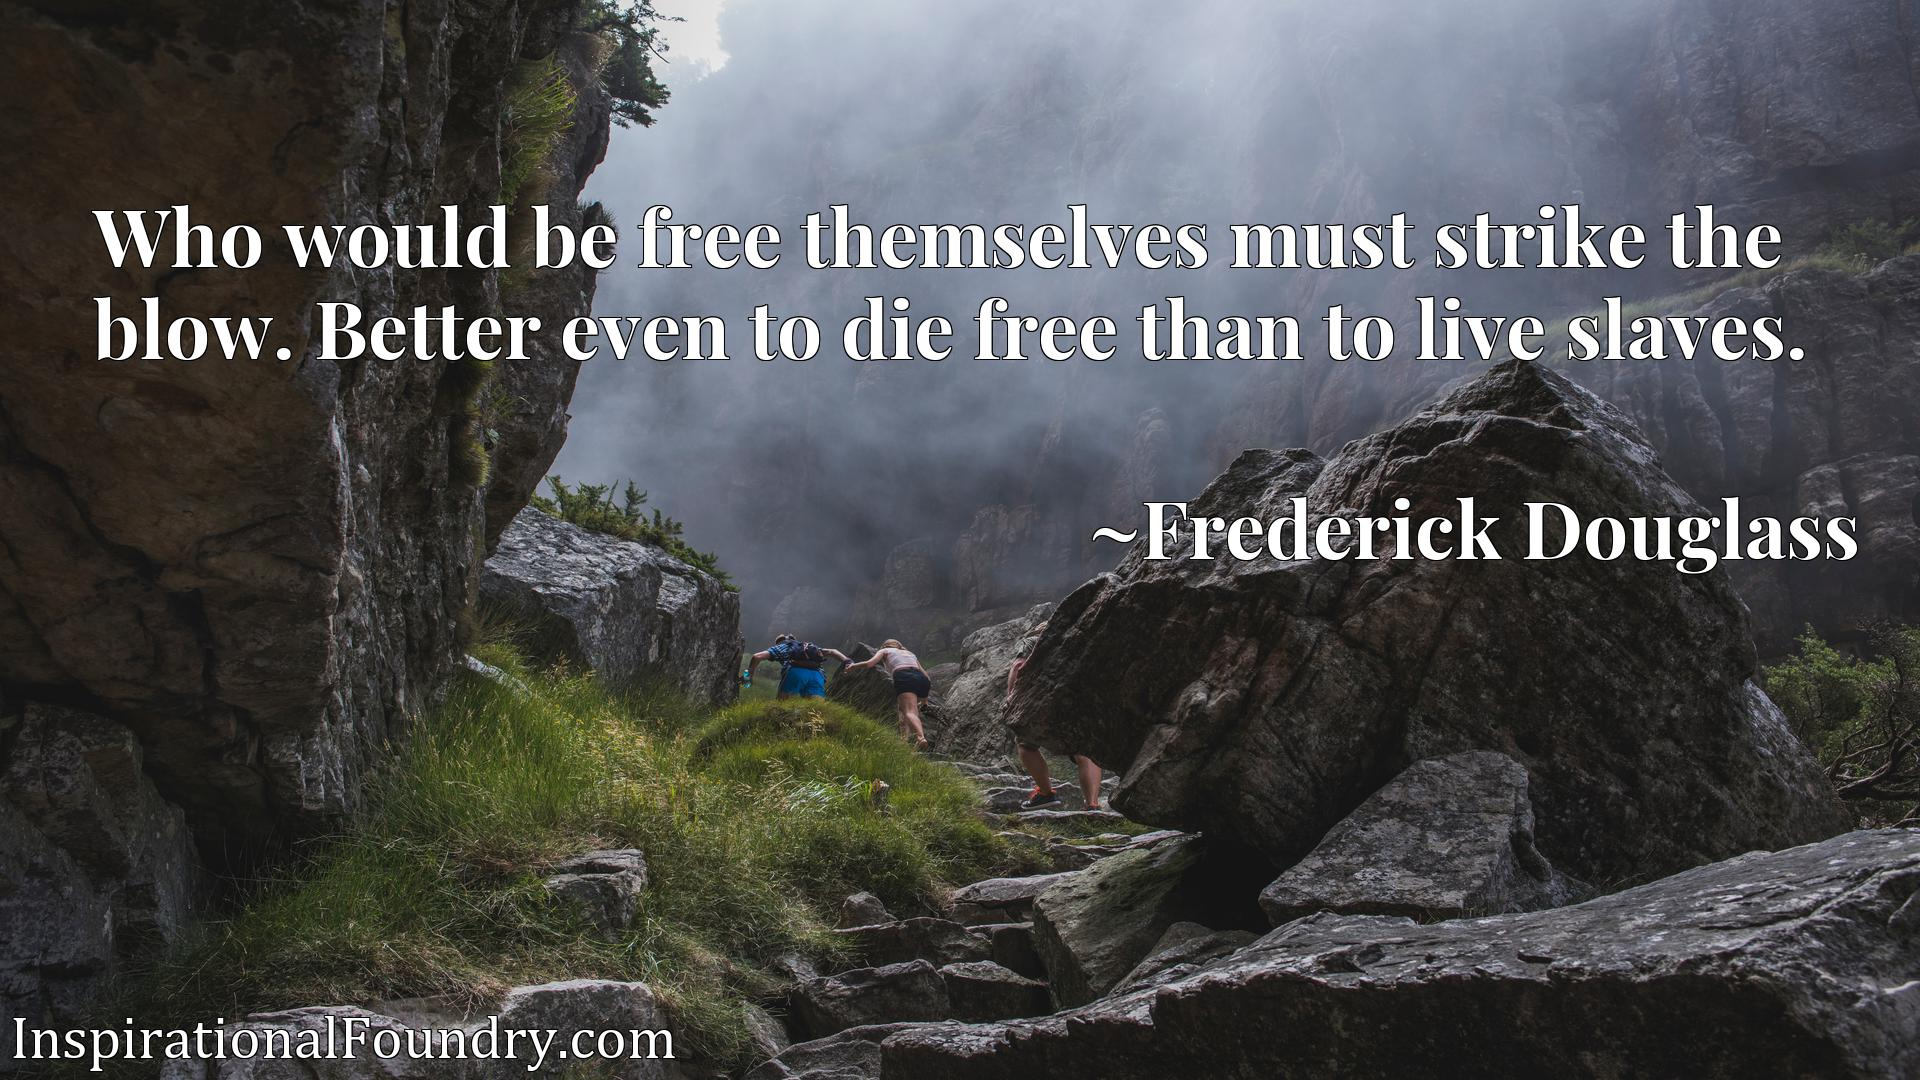 Who would be free themselves must strike the blow. Better even to die free than to live slaves.